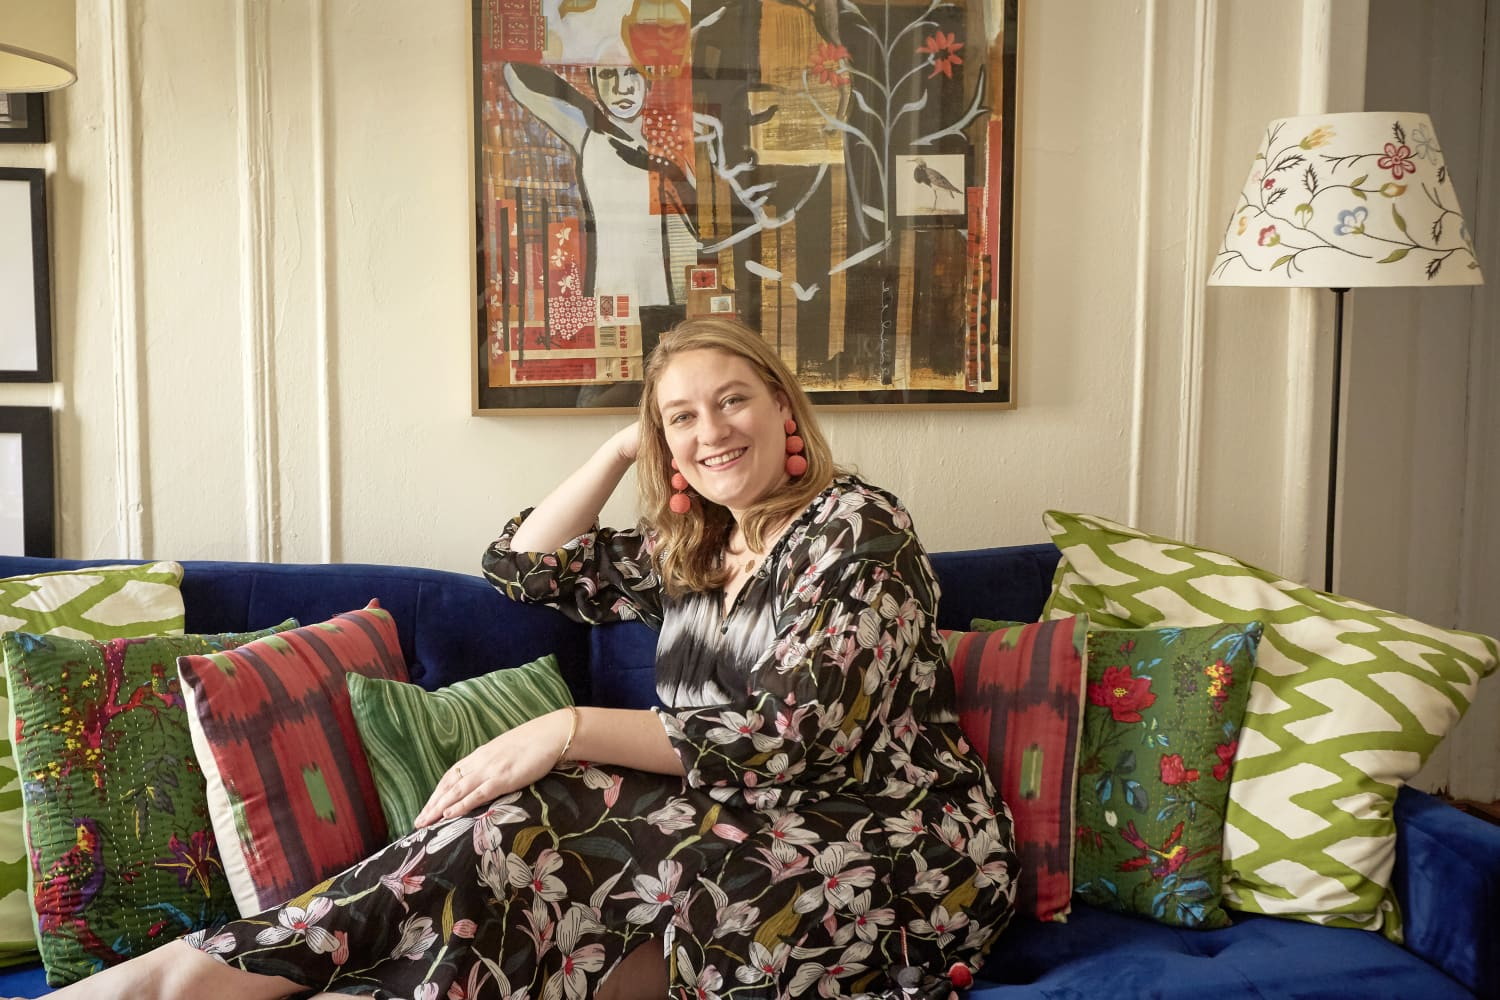 abbe-wright-728-square-foot-brooklyn-apartment